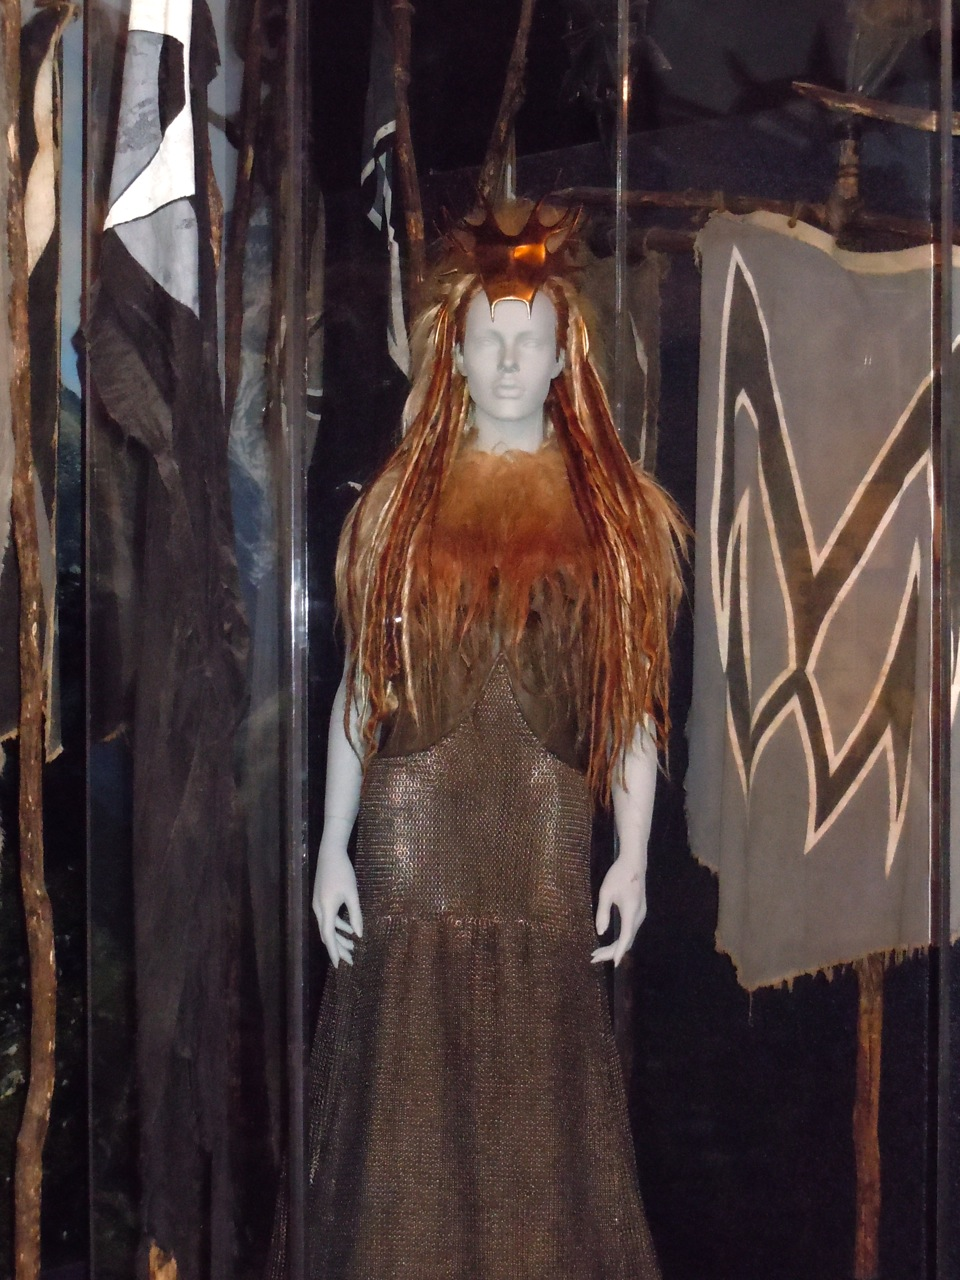 Narnia White Witch battle costume White Witch Jadis Narnia costume ...  sc 1 st  Hollywood Movie Costumes and Props & Hollywood Movie Costumes and Props: White Witch costume and chariot ...